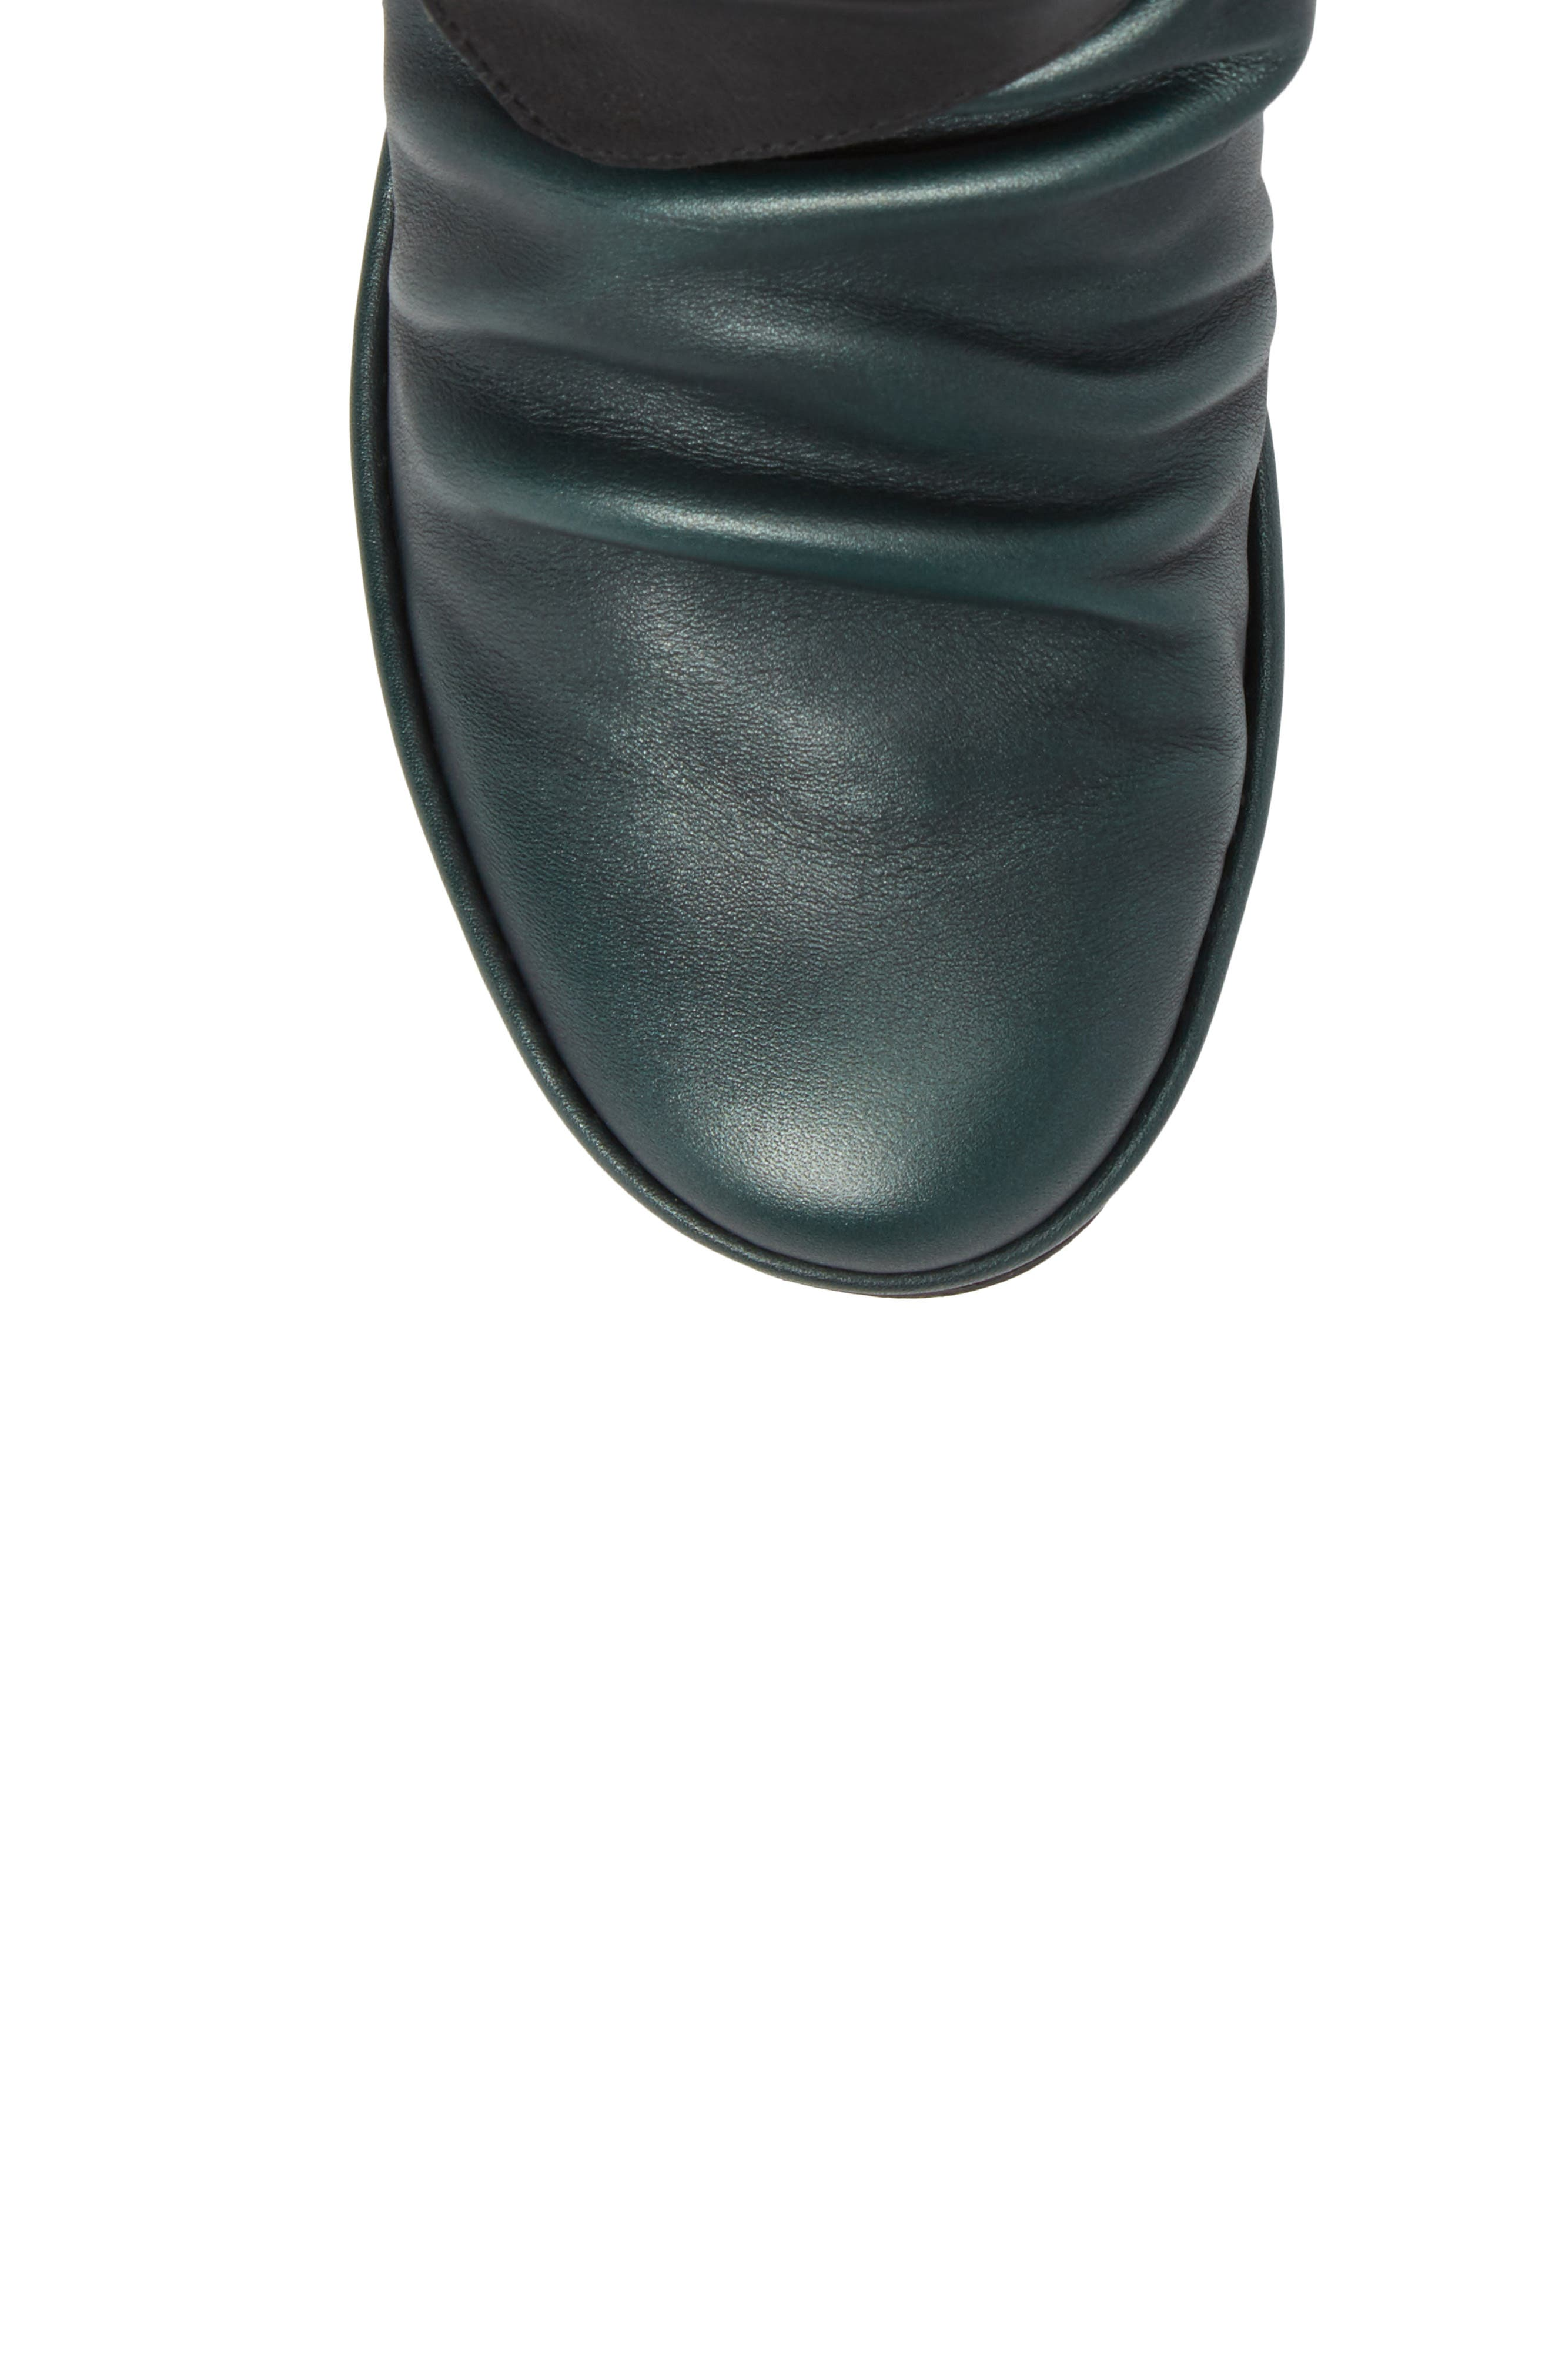 Yoxi Wedge Bootie,                             Alternate thumbnail 5, color,                             Seaweed Leather